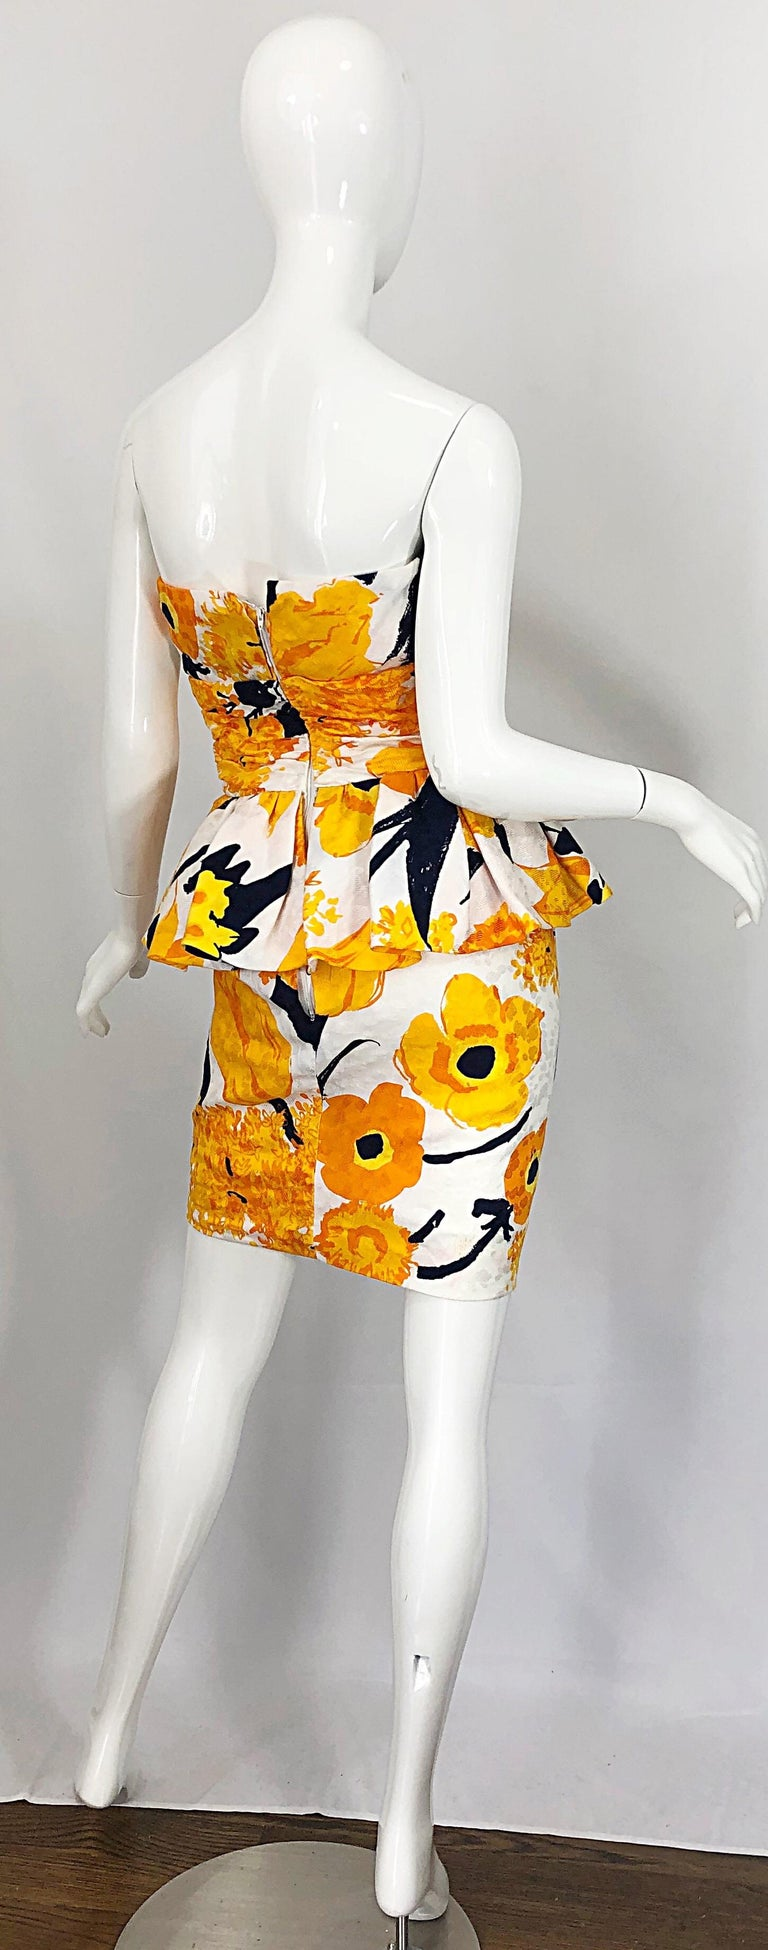 Avant Garde 1980s Amen Wardy Abstract Flower Print Vintage 80s Strapless Dress In Excellent Condition For Sale In Chicago, IL